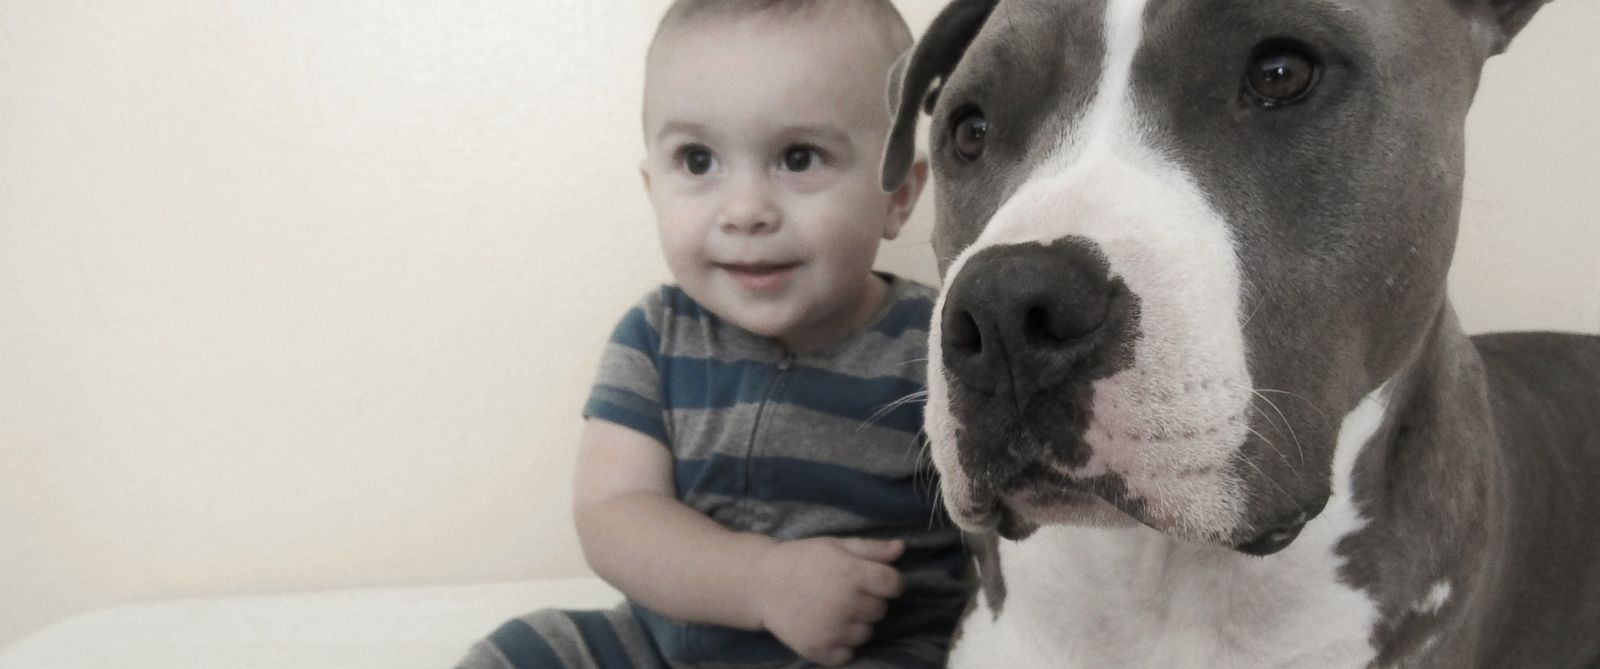 PHOTO: Three-year-old Gemma and ten-month-old Elliott have each others backs.